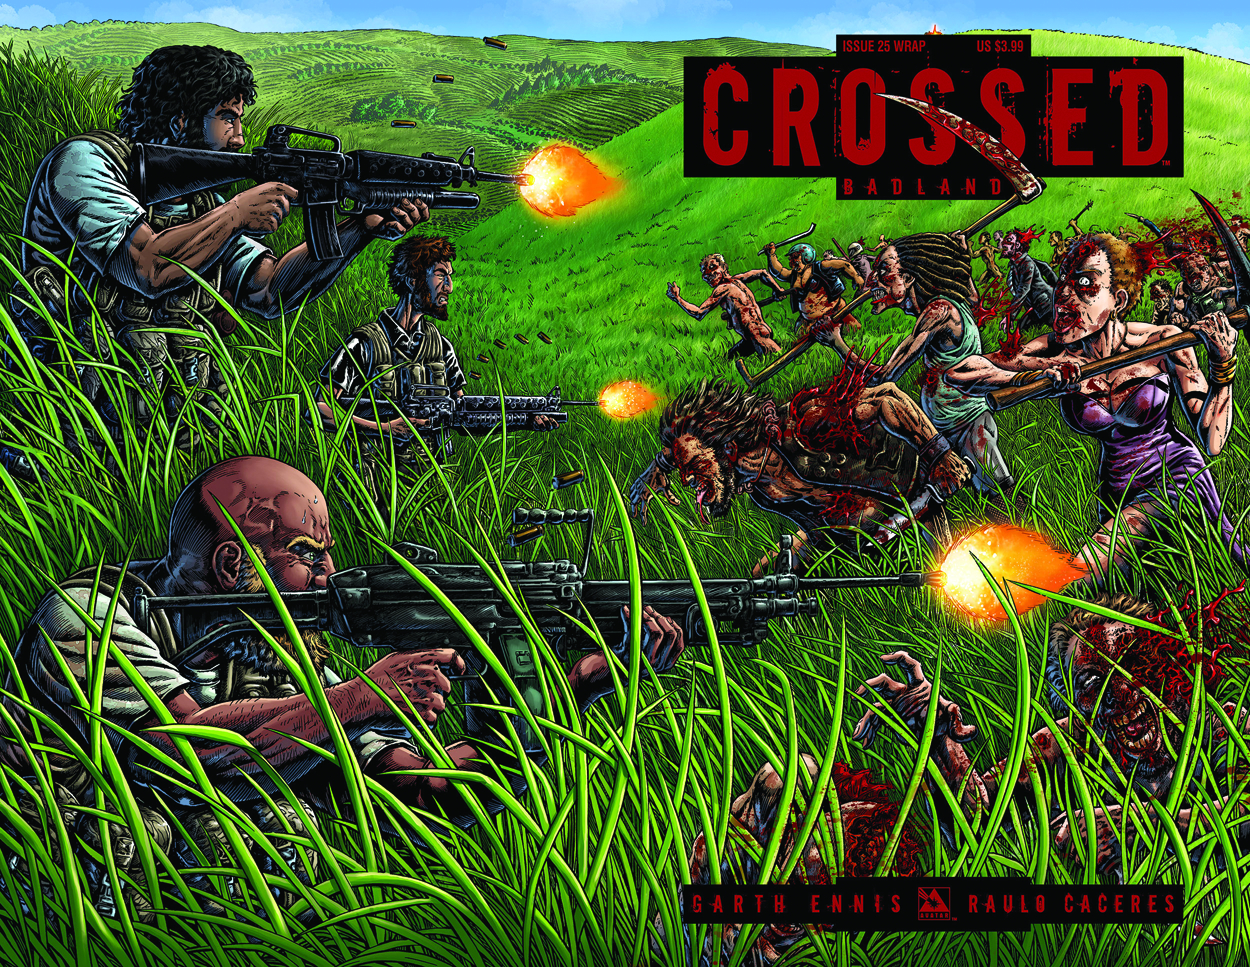 CROSSED BADLANDS #25 WRAP CVR (MR)